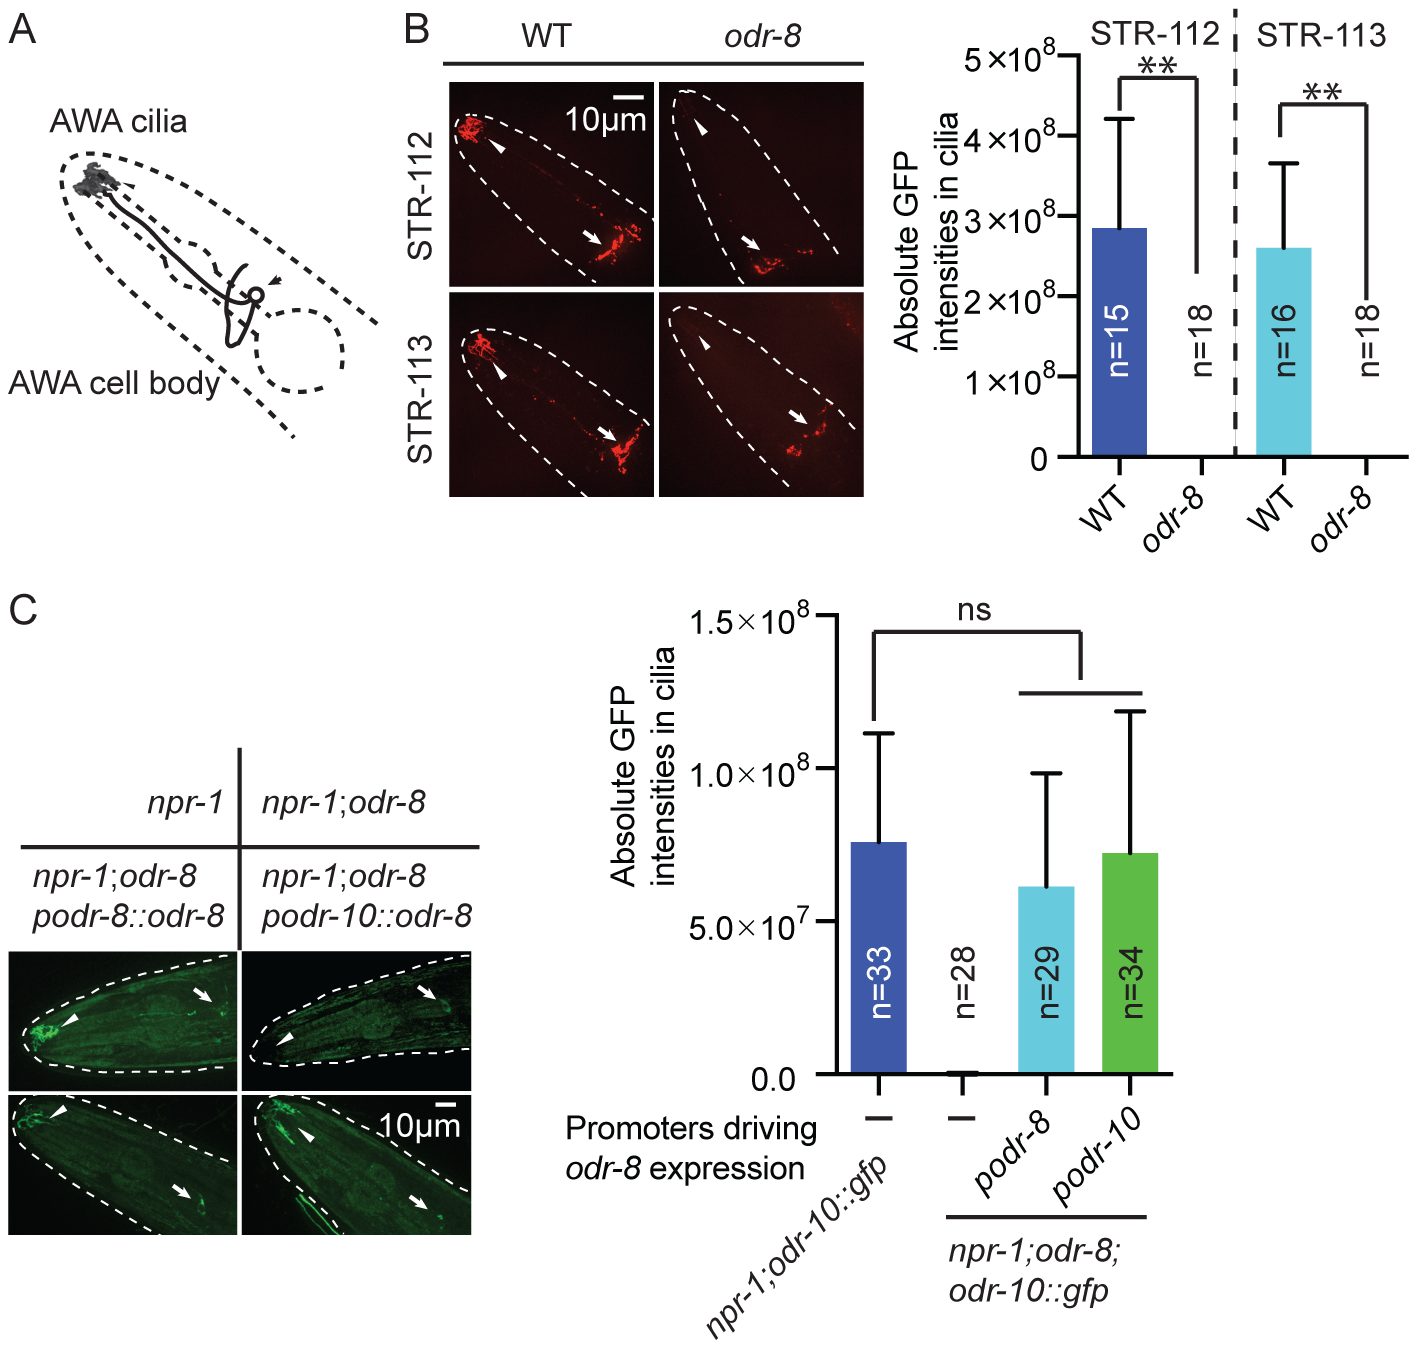 ODR-8 is required for the GPCR trafficking to the AWA cilia.